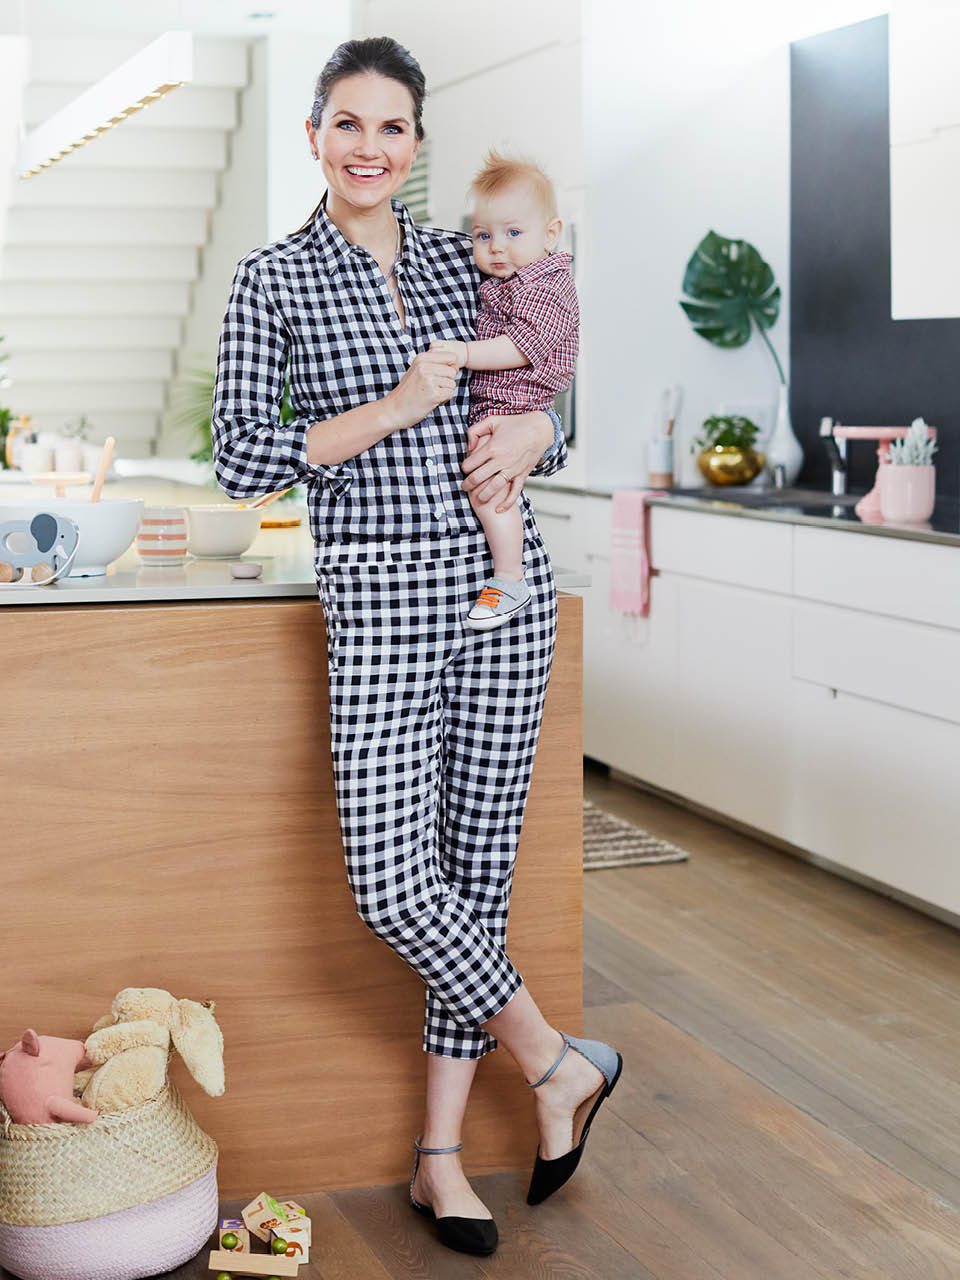 Mom wearing all gingham in kitchen holding her baby